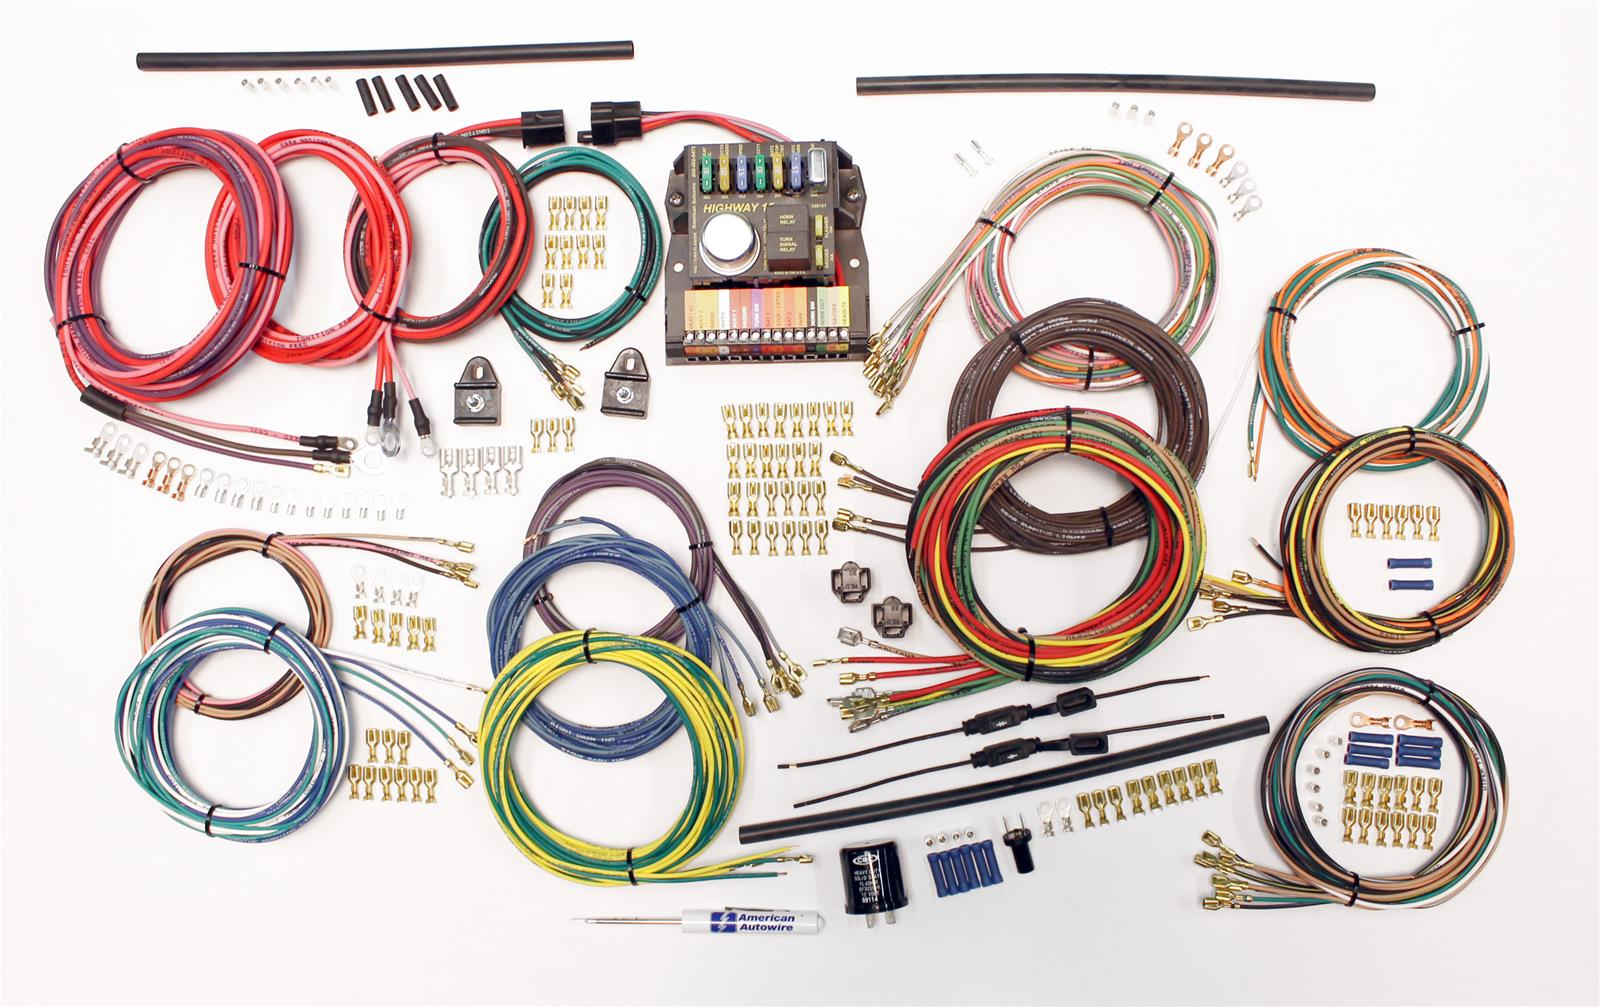 aww 510419_xl american autowire classic update series wiring harness kits 510419 vw wiring harness at crackthecode.co